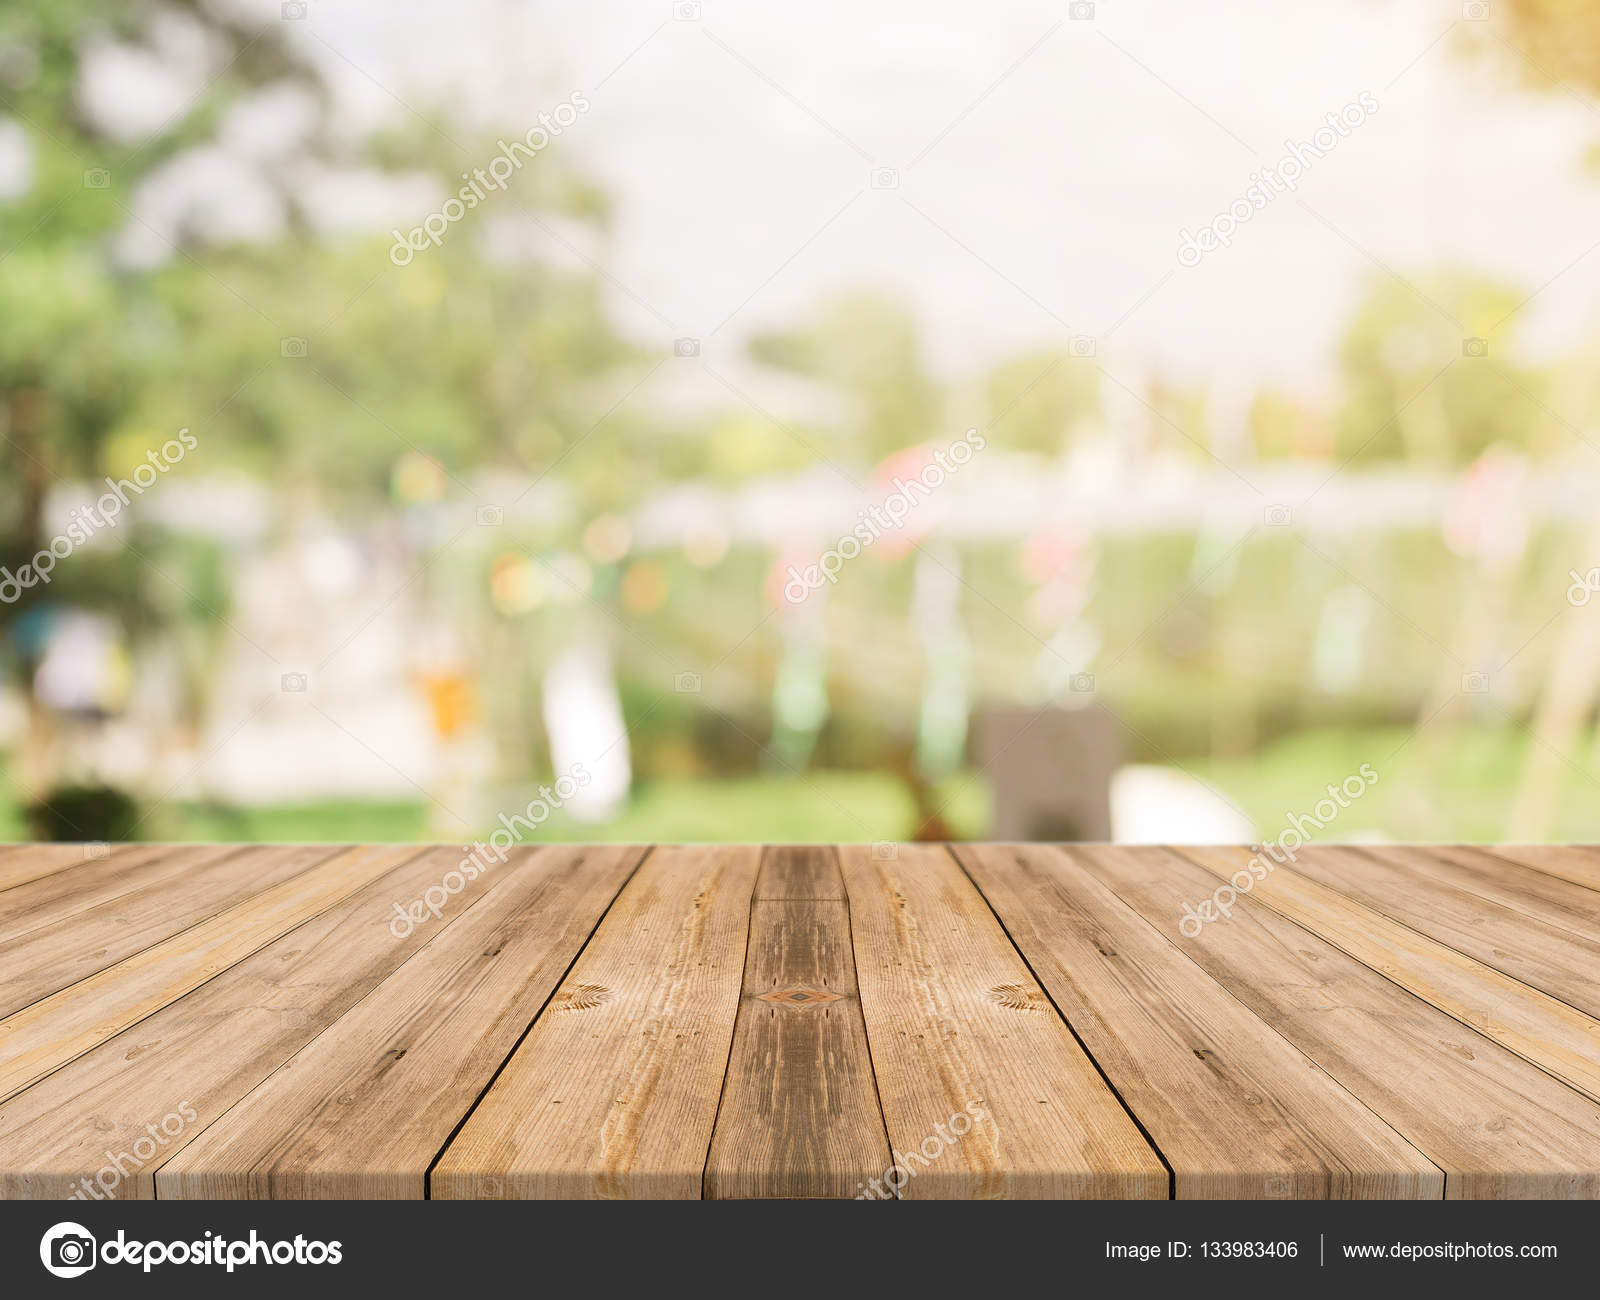 Coffee Shop Floor Plan Wooden Board Empty Table Top On Of Blurred Background